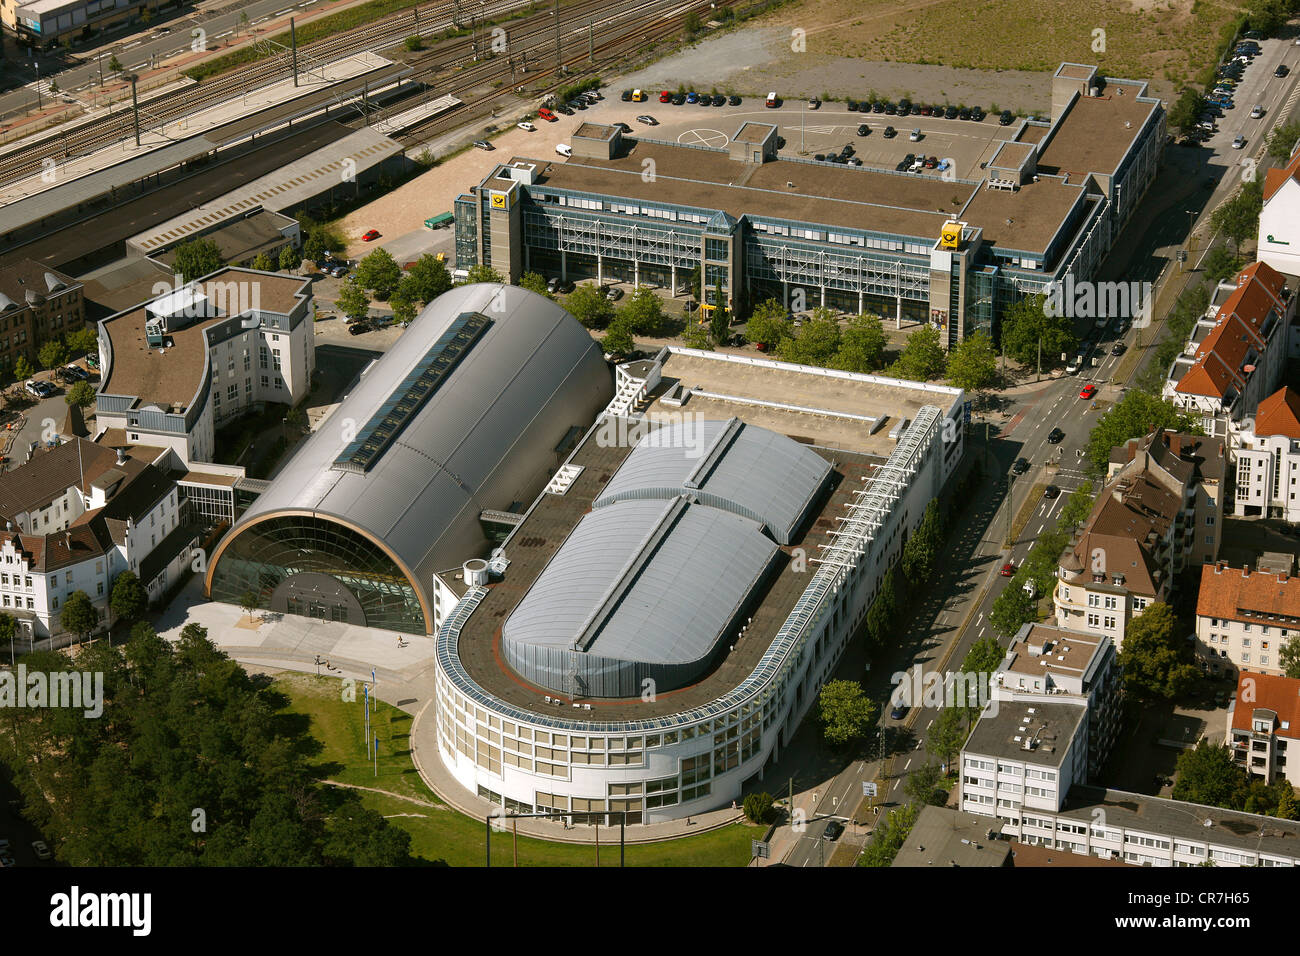 Cinemaxx Bielefeld Cinemaxx Stock Photos And Cinemaxx Stock Images Alamy